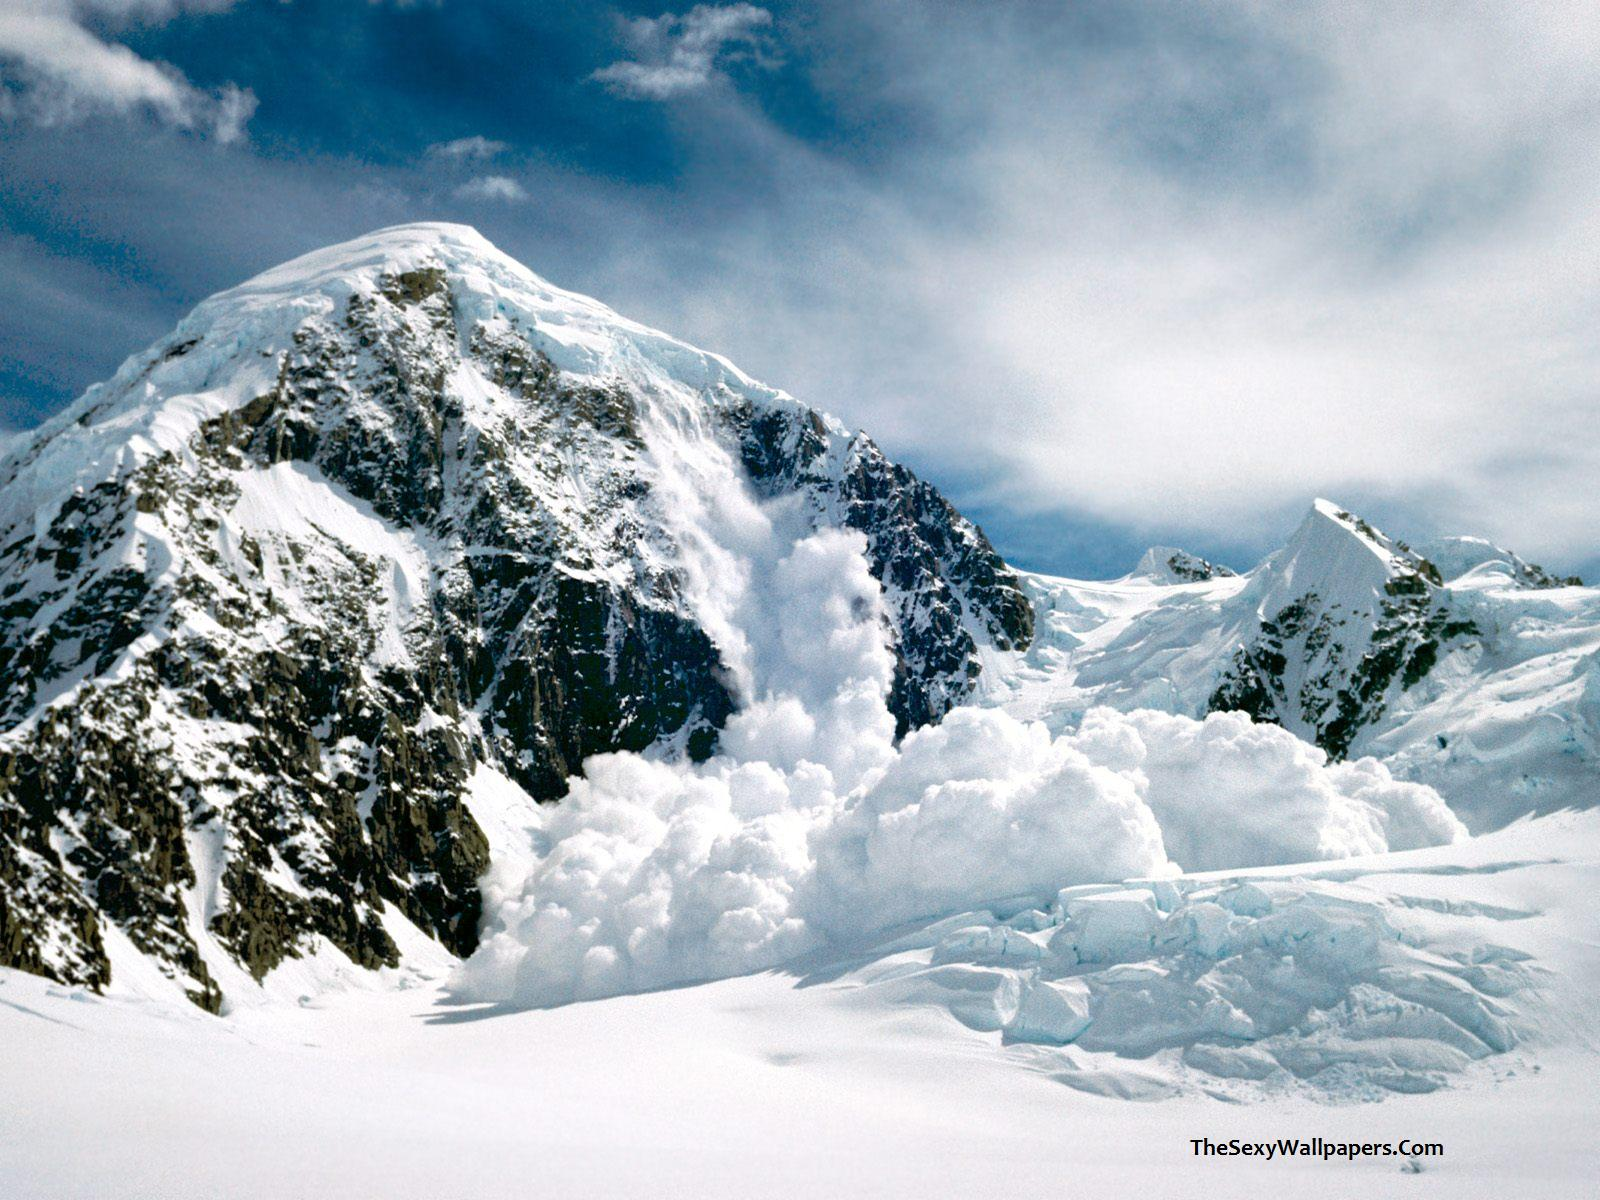 Wallpapers of Avalanche HD, 290.2 Kb, Hye Hyre